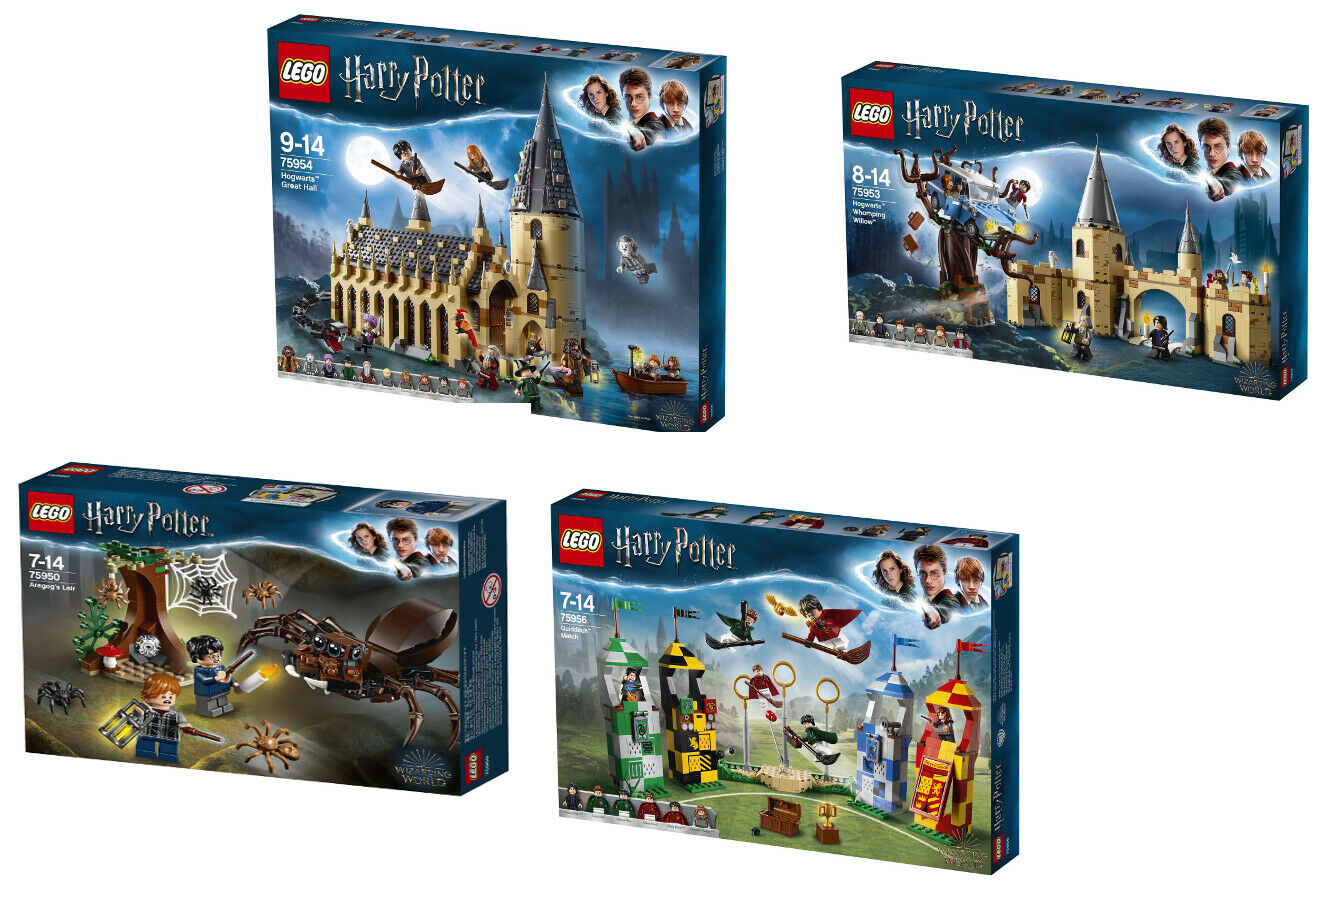 Lego Harry Potter 4er Set 75954  + 75953 + 75956 + 75950, NEUF  qualité authentique